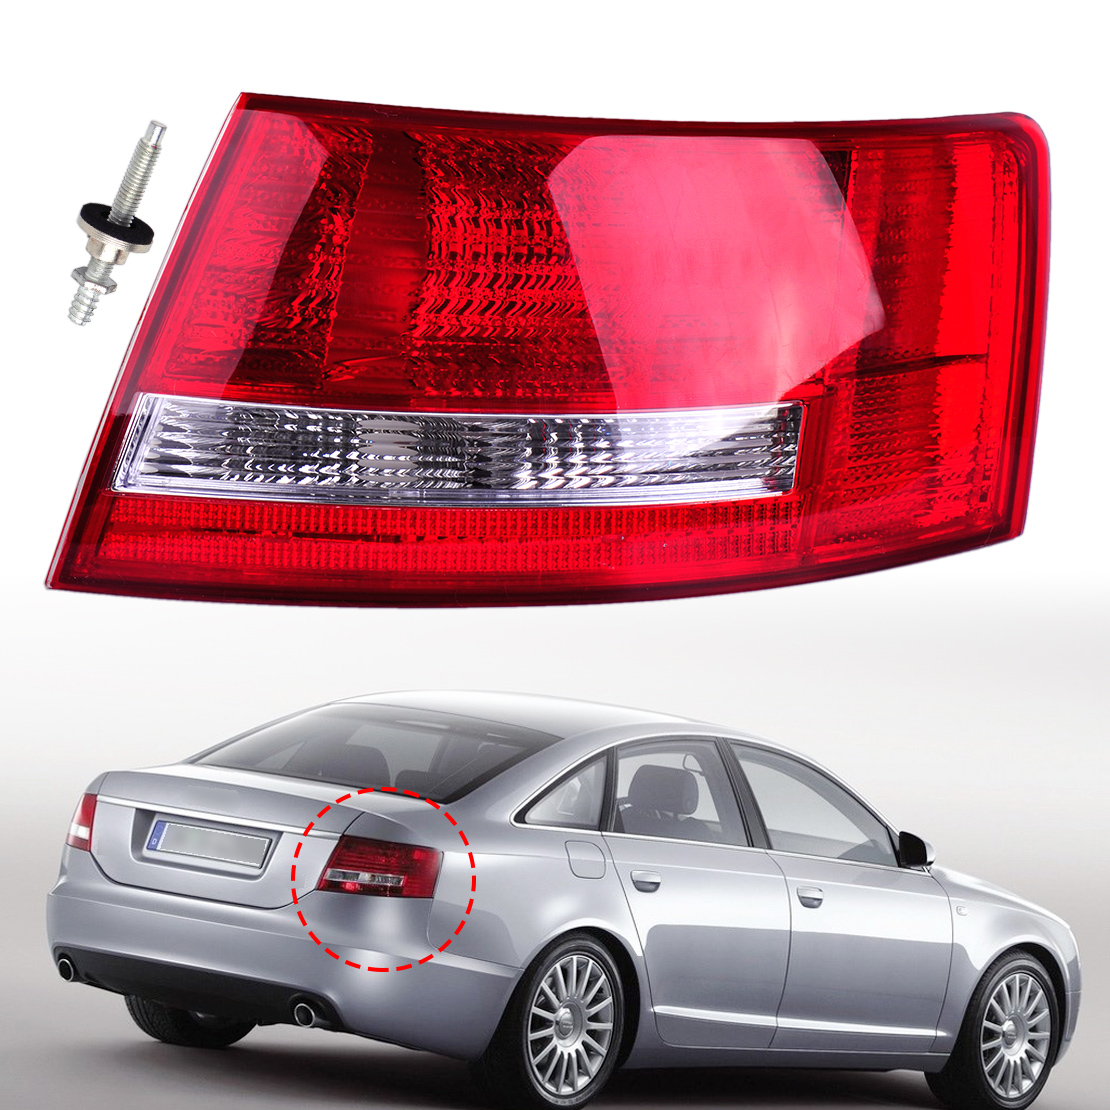 CITALL 4F5945096D 4F5 945 096D Right Tail Light Assembly Lamp Housing without Bulb for Audi A6 Quattro Sedan 2005 2006 2007 2008 free shipping for skoda octavia sedan a5 2005 2006 2007 2008 right side rear lamp tail light